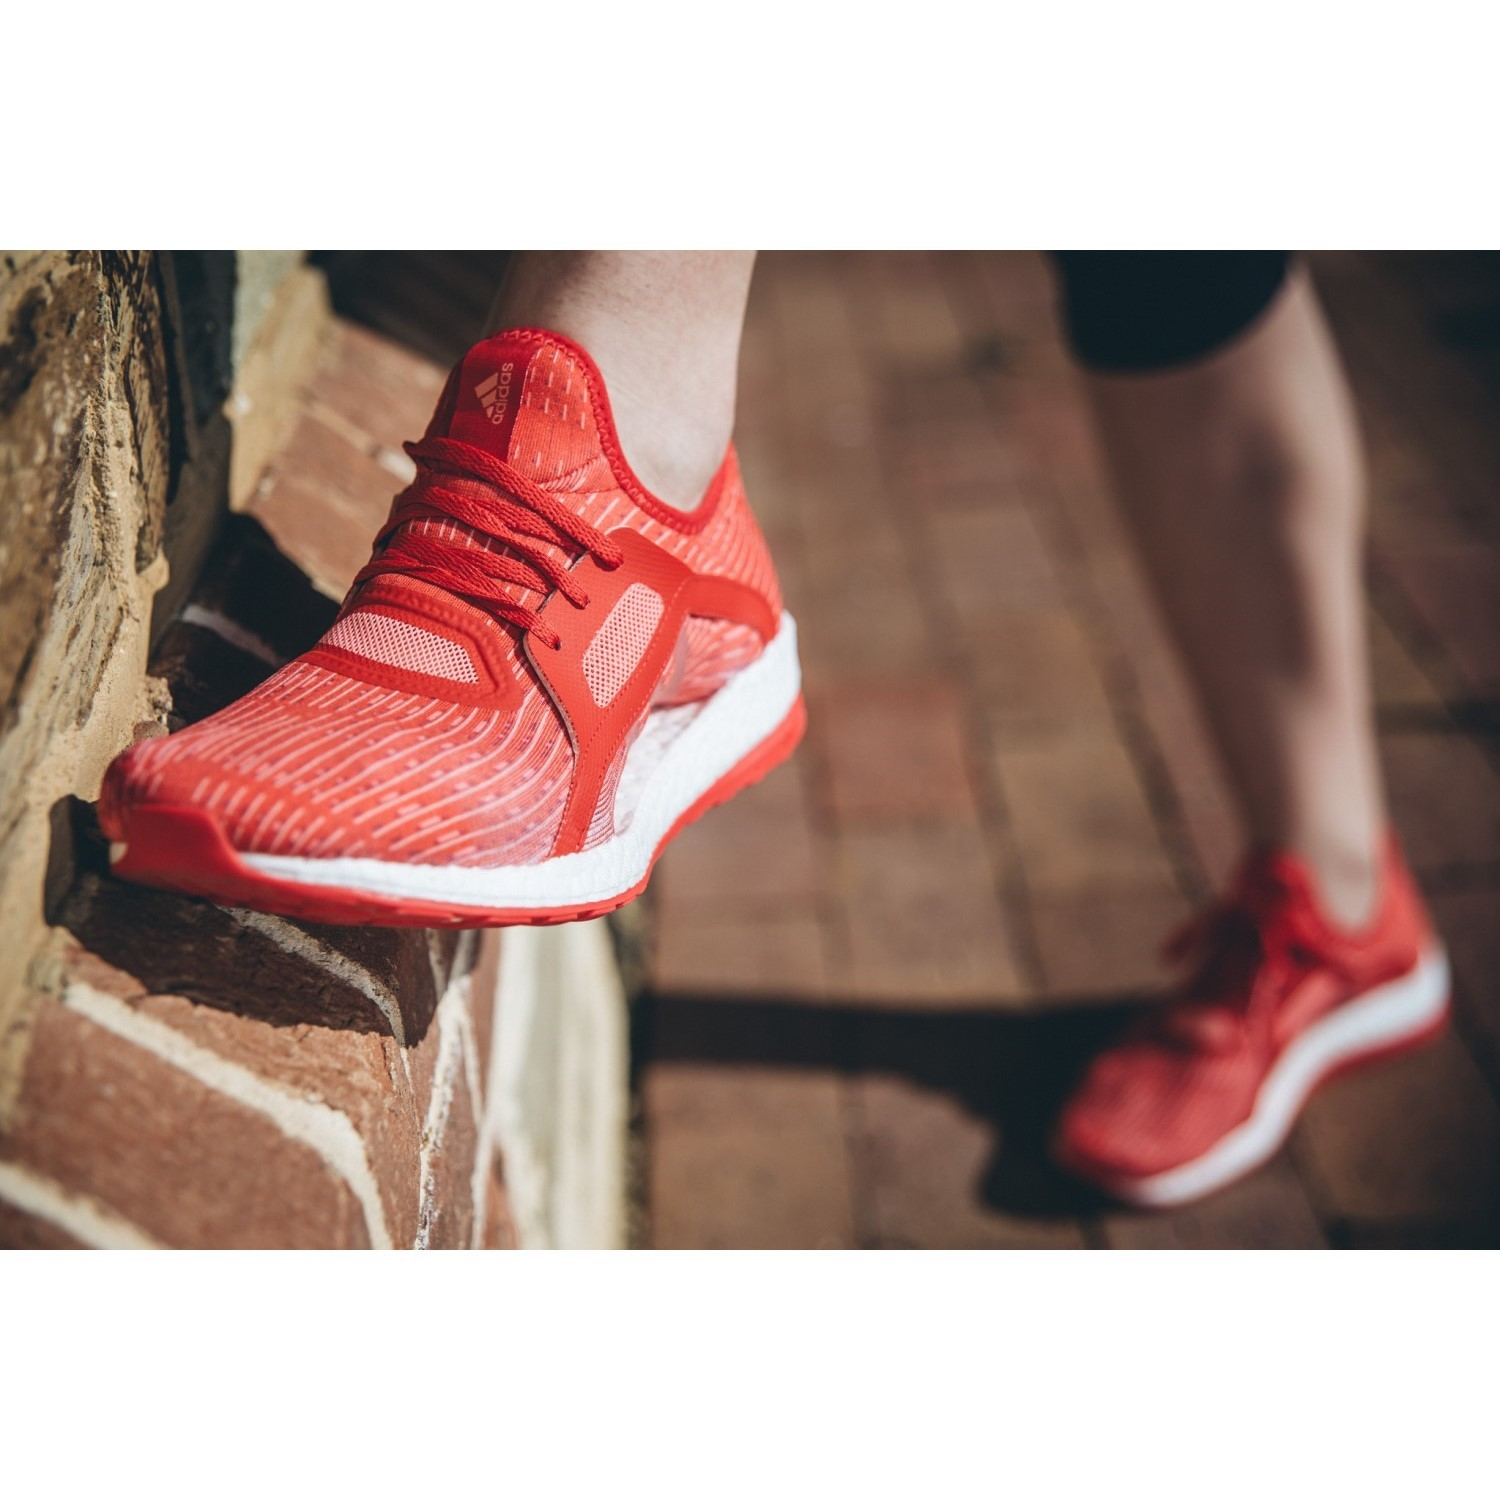 42124a893a5f7 Adidas Pure Boost X - Womens Running Shoes - Ray Red